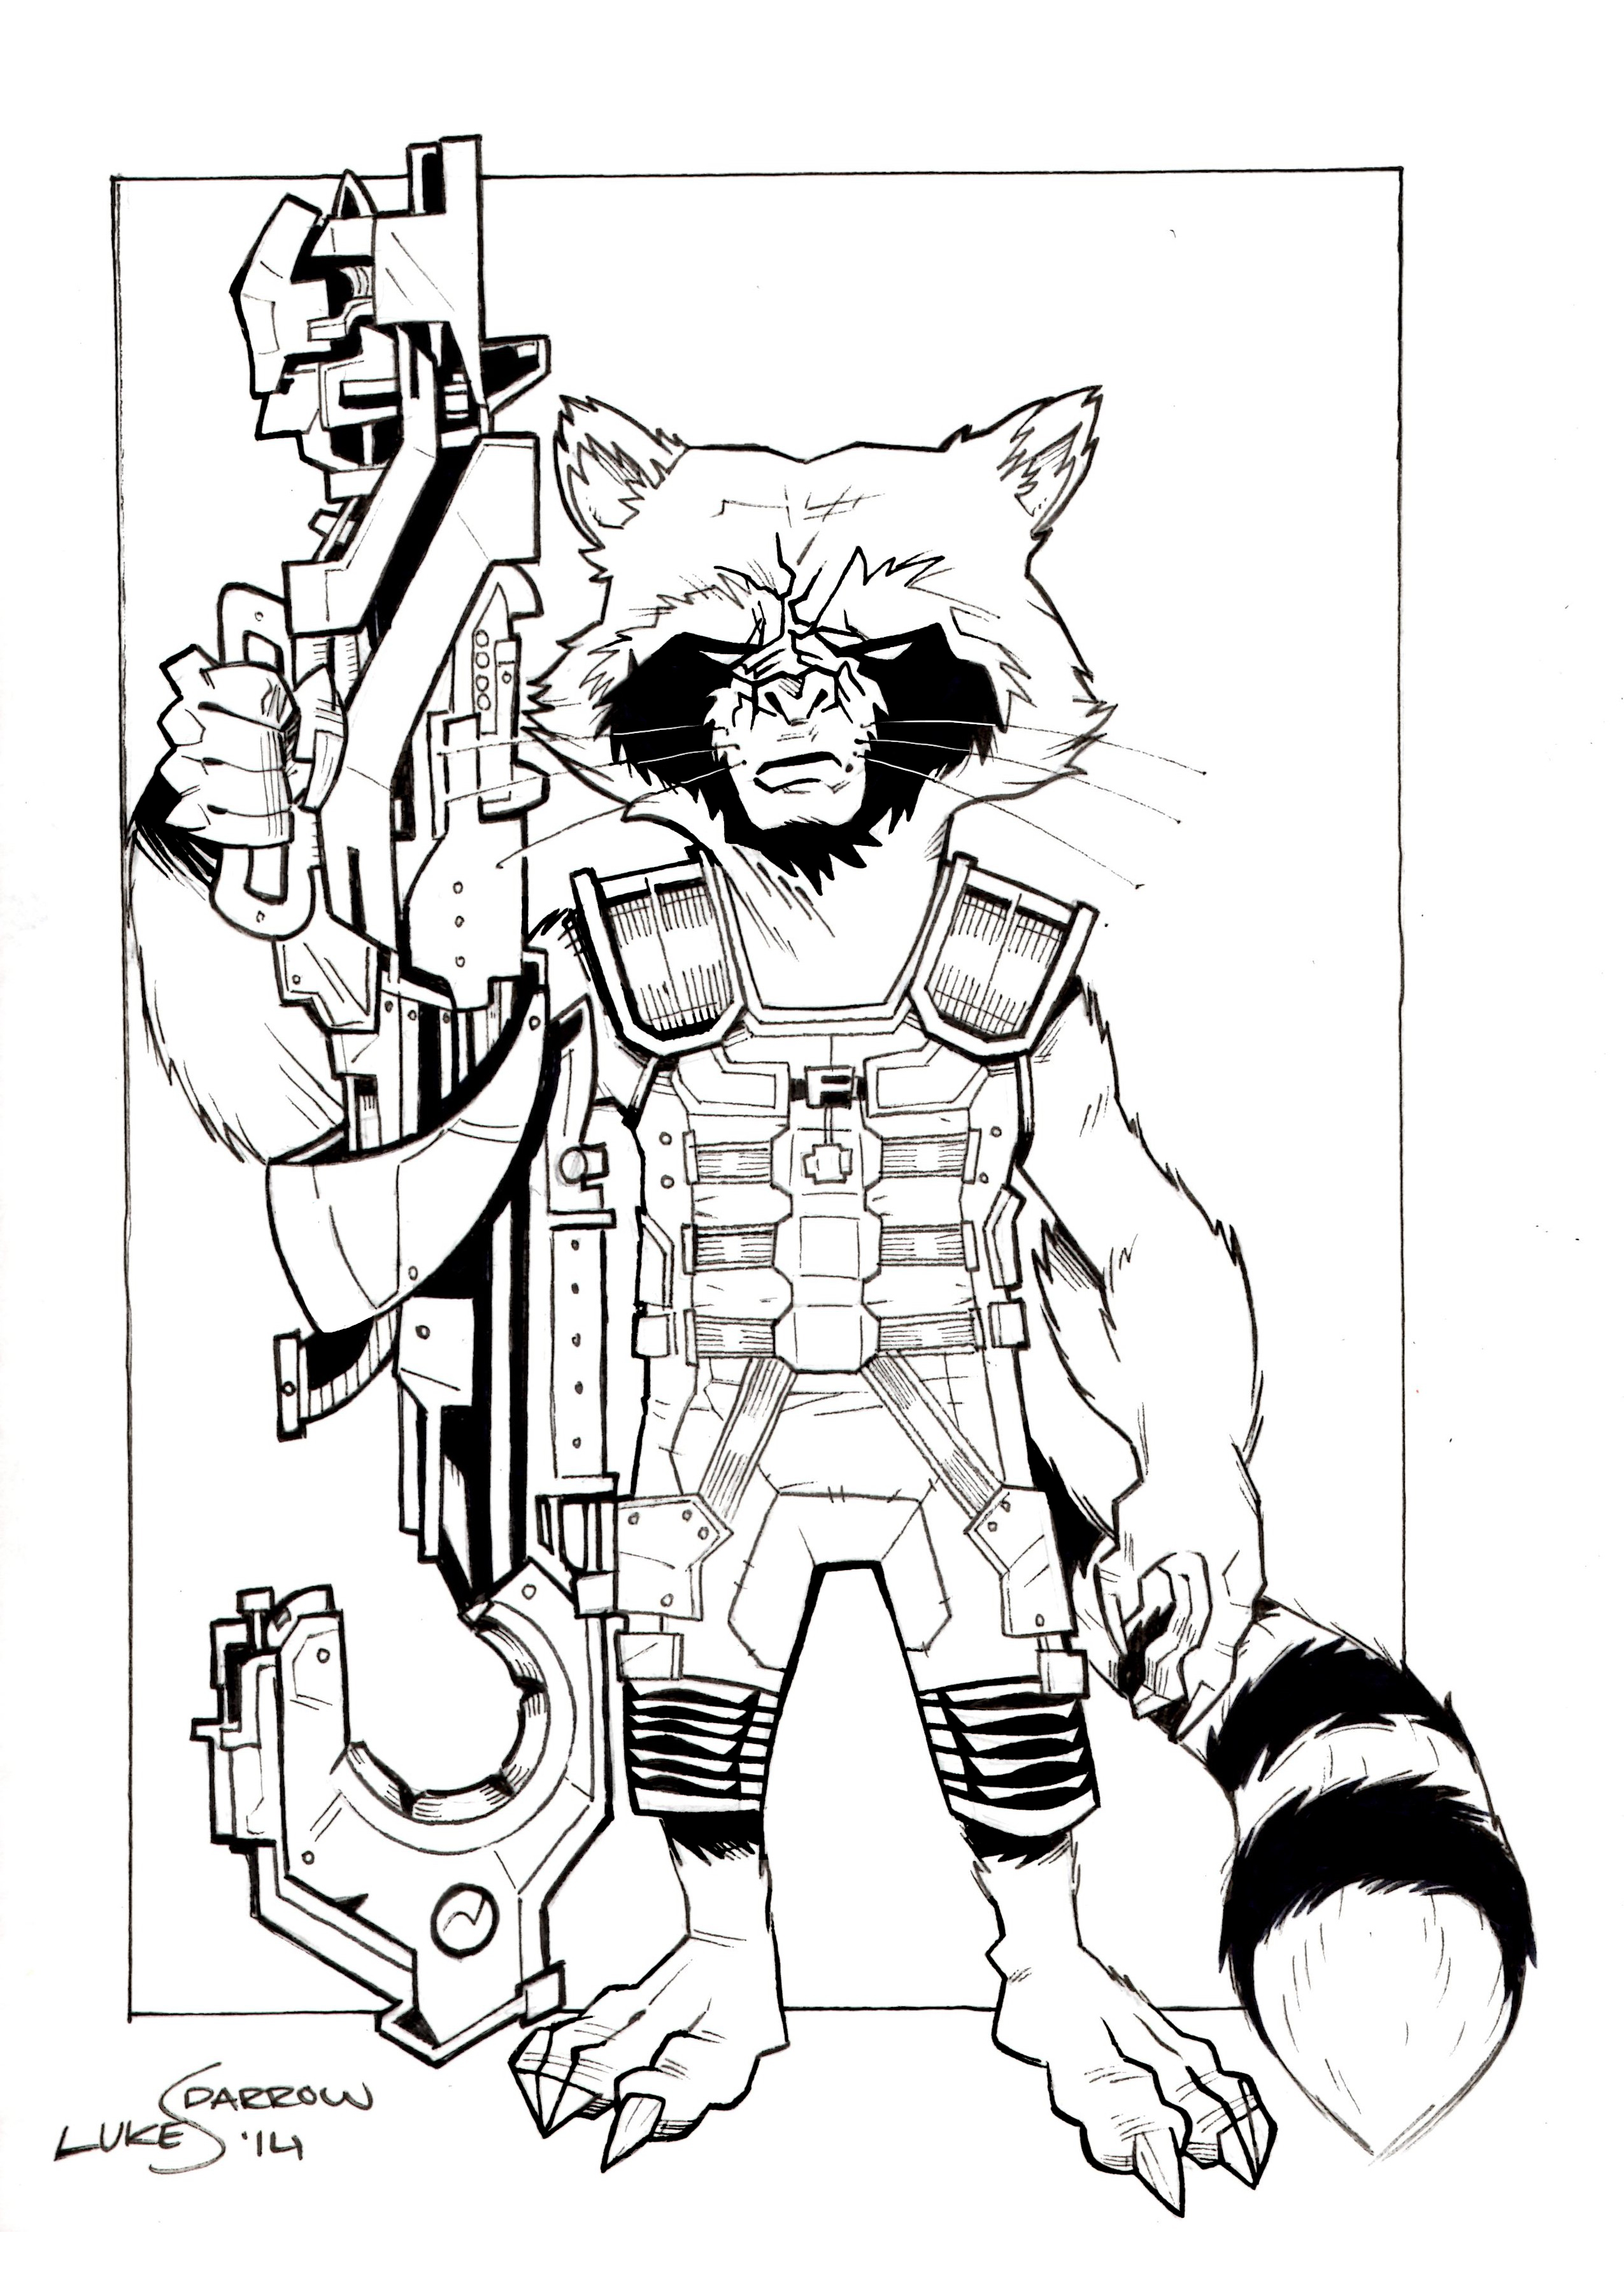 Coloring pages raccoon - Rocket_raccoon_by_lukesparrow D7s04vb Rocket Raccoon By Lukesparrow On Deviantart On Raccoon Line Drawing